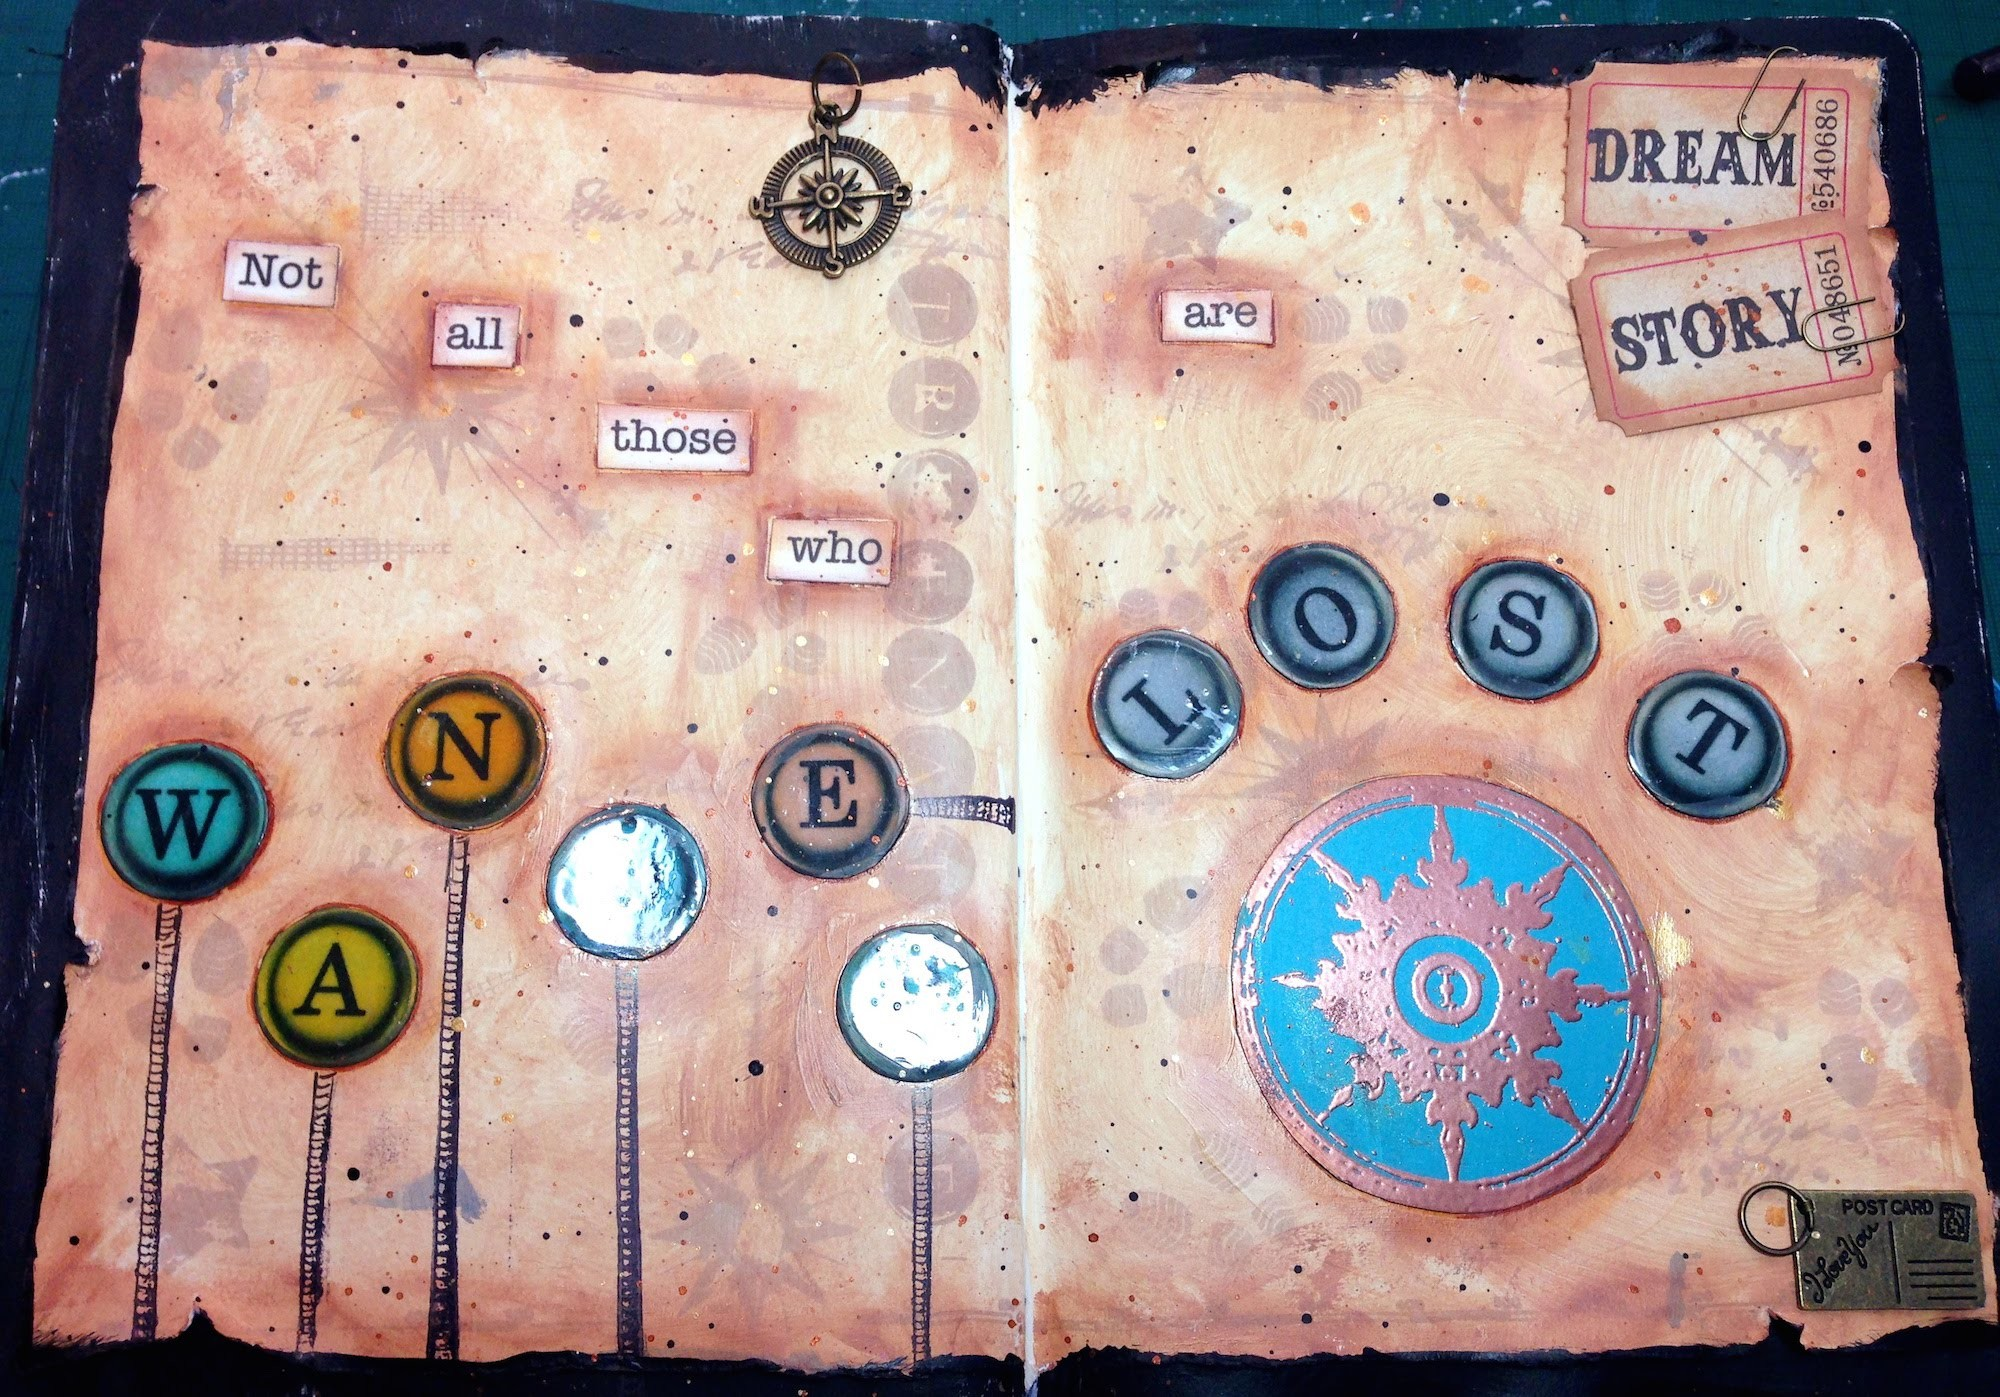 MIXED MEDIA ART JOURNAL TUTORIAL - NOT ALL THOSE WHO WANDER ARE LOST - PINK AT HEART